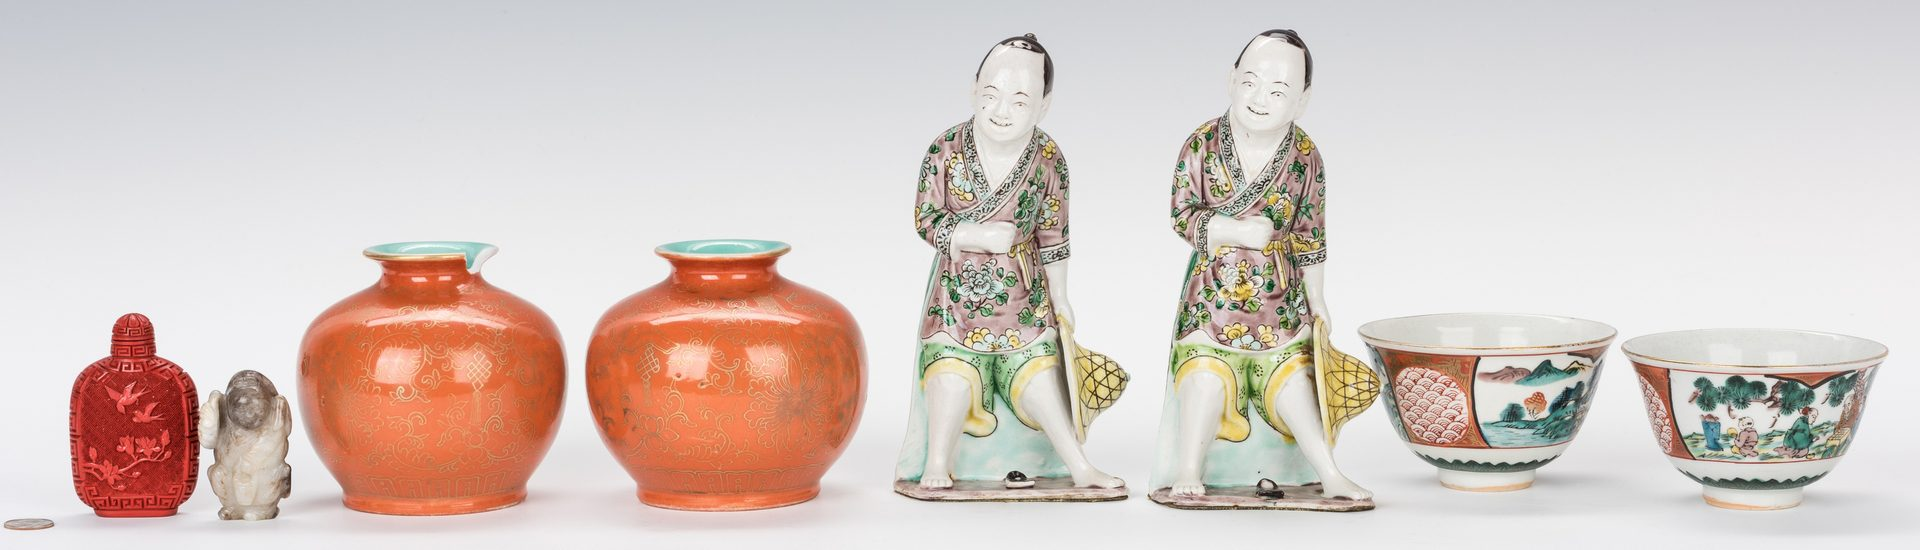 Lot 755: Group of 8 Asian Decorative Items